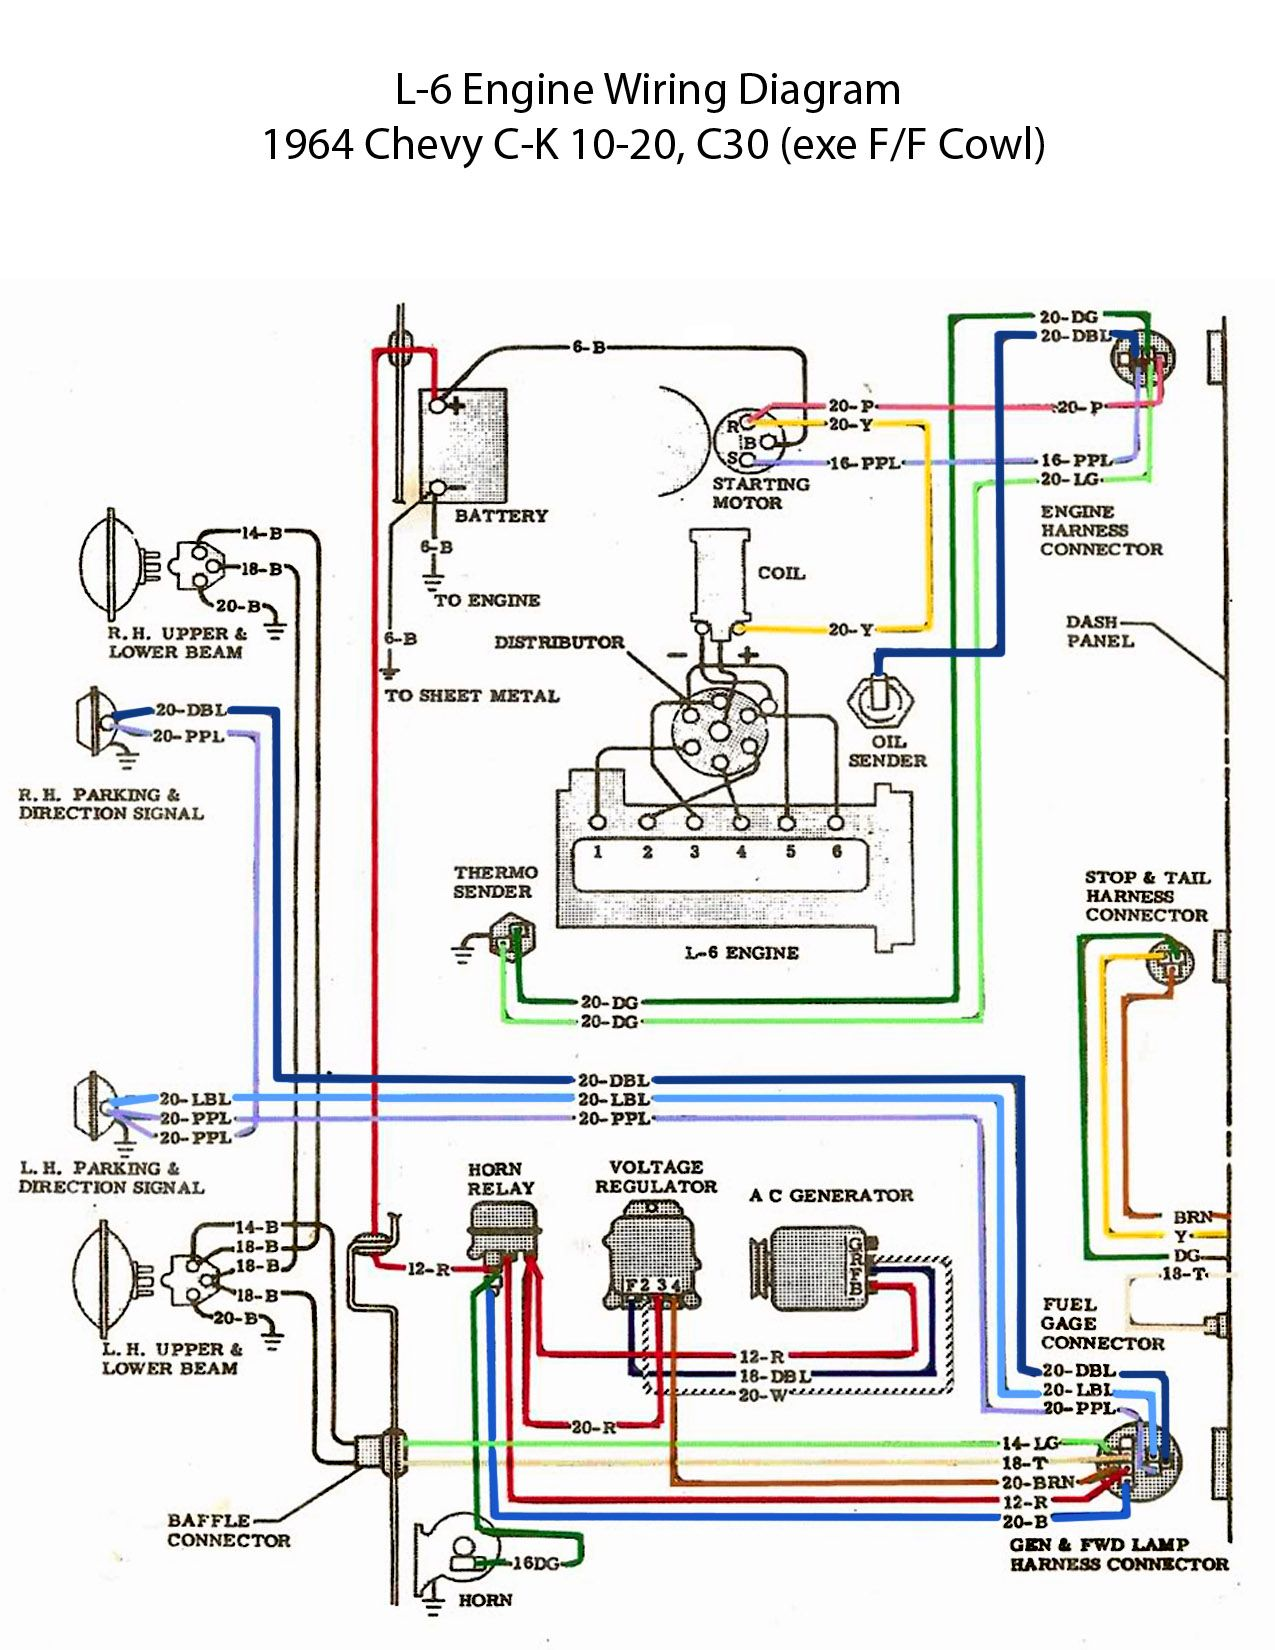 electric l 6 engine wiring diagram 60s chevy c10 wiring rh pinterest com 1963 chevy truck wiring harness 1960 Chevy C10 Wiring Harness